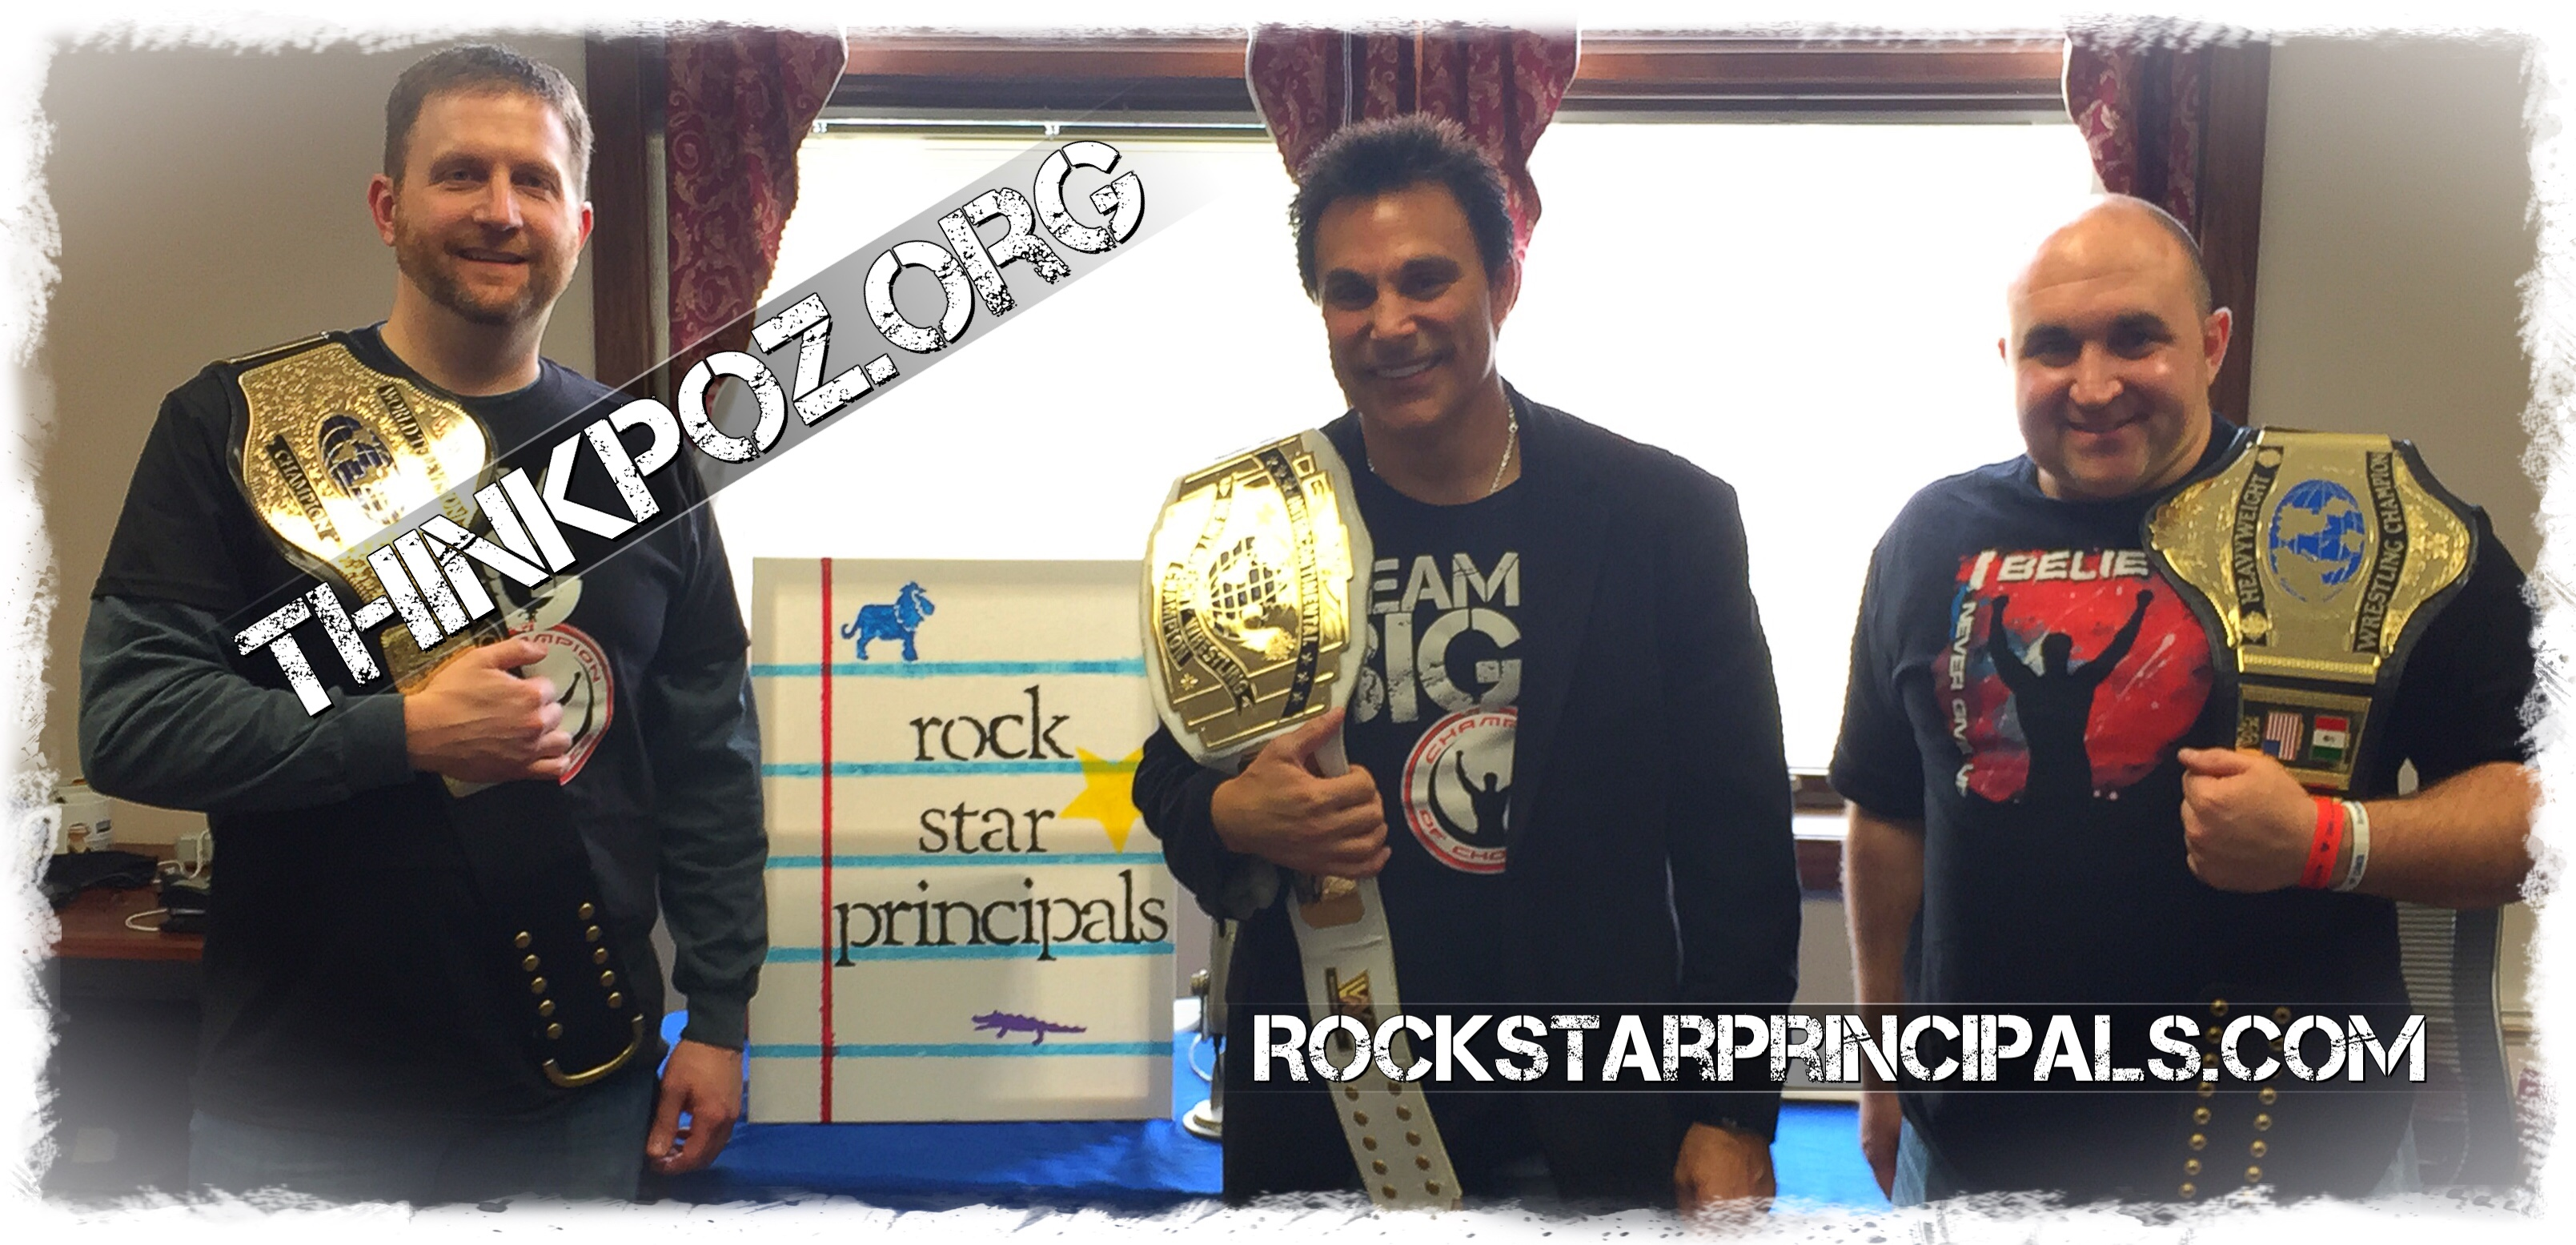 Episode 59: The Rock Star Principals' Podcast (Special Guest-Marc Mero)